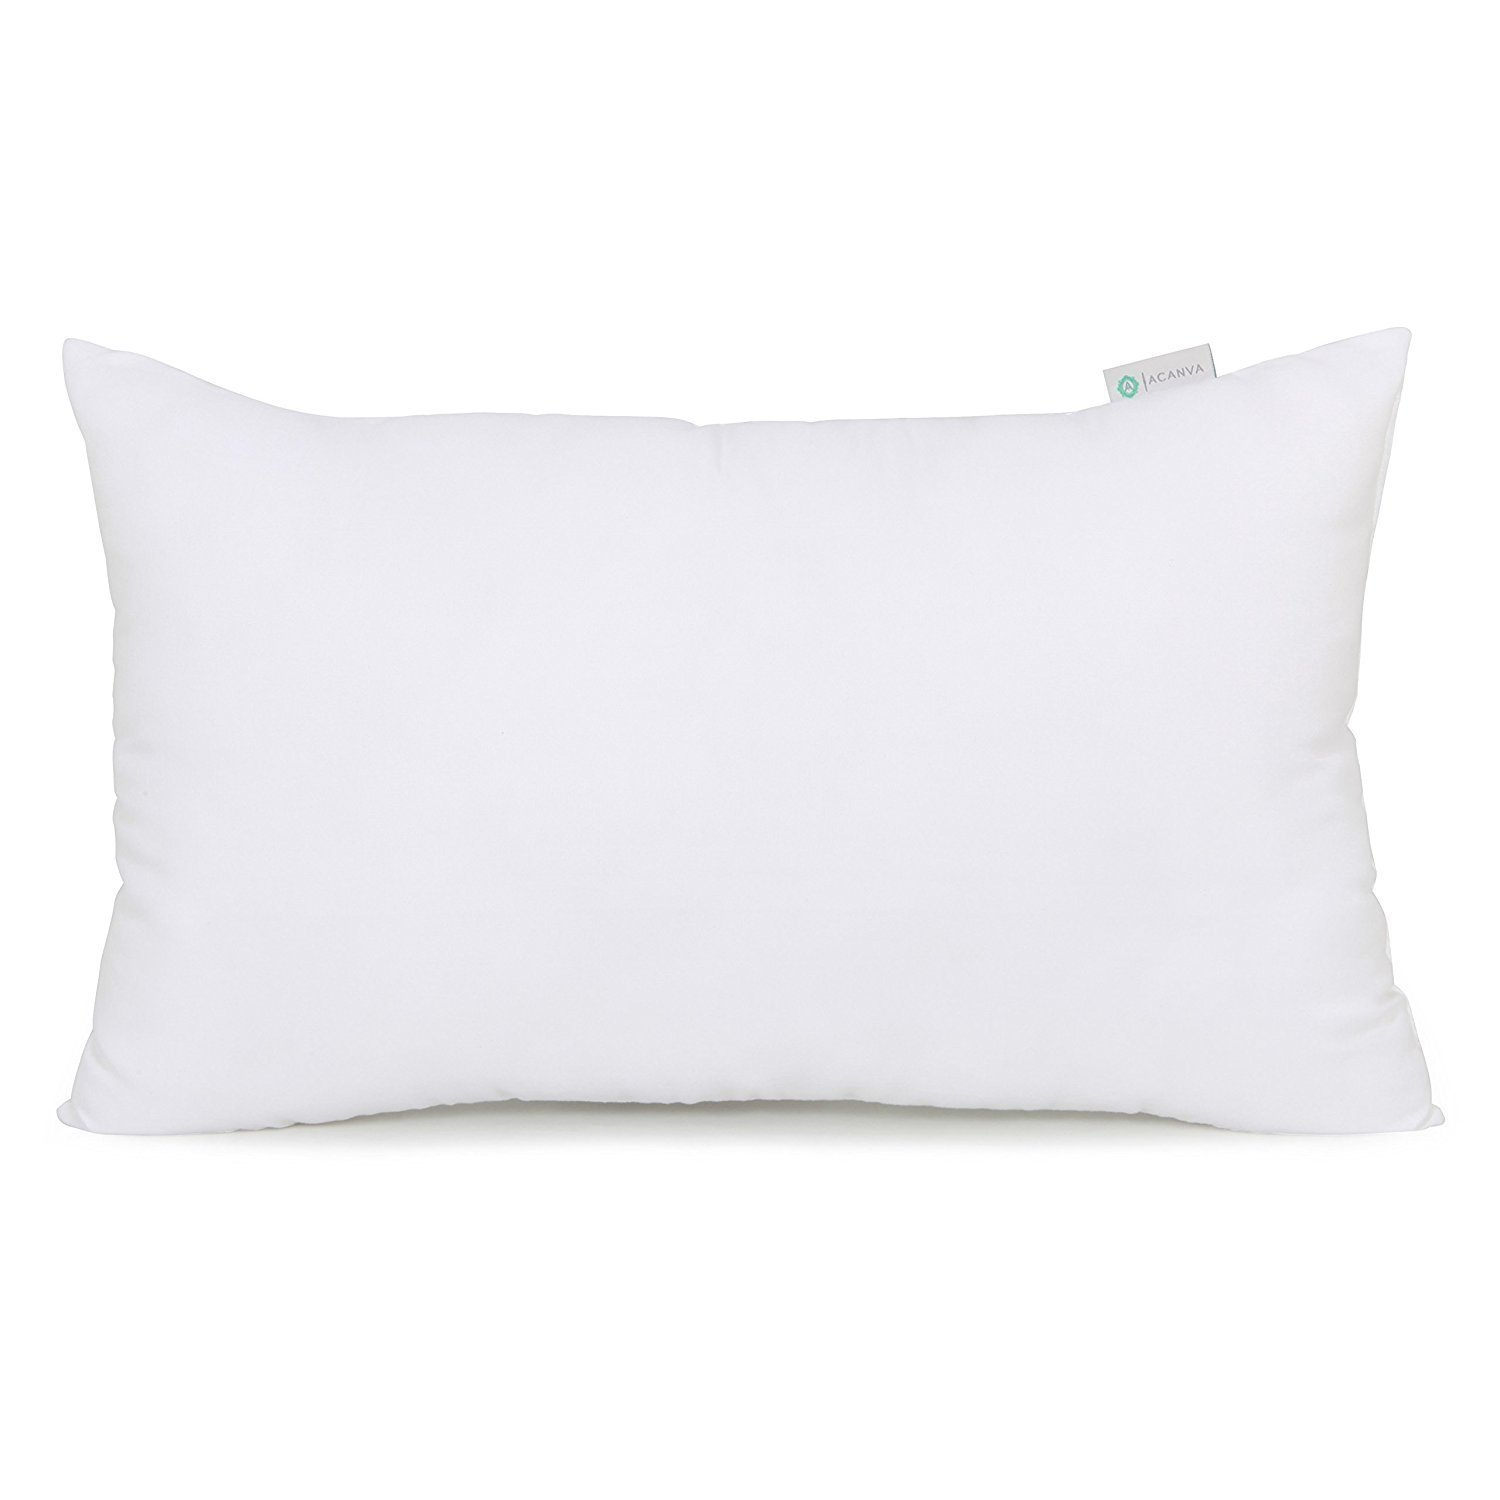 "Image of Acanva Hypoallergenic Pillow Insert Form Cushion Sham, 12"" L x 24"" W, Oblong Rectangle"